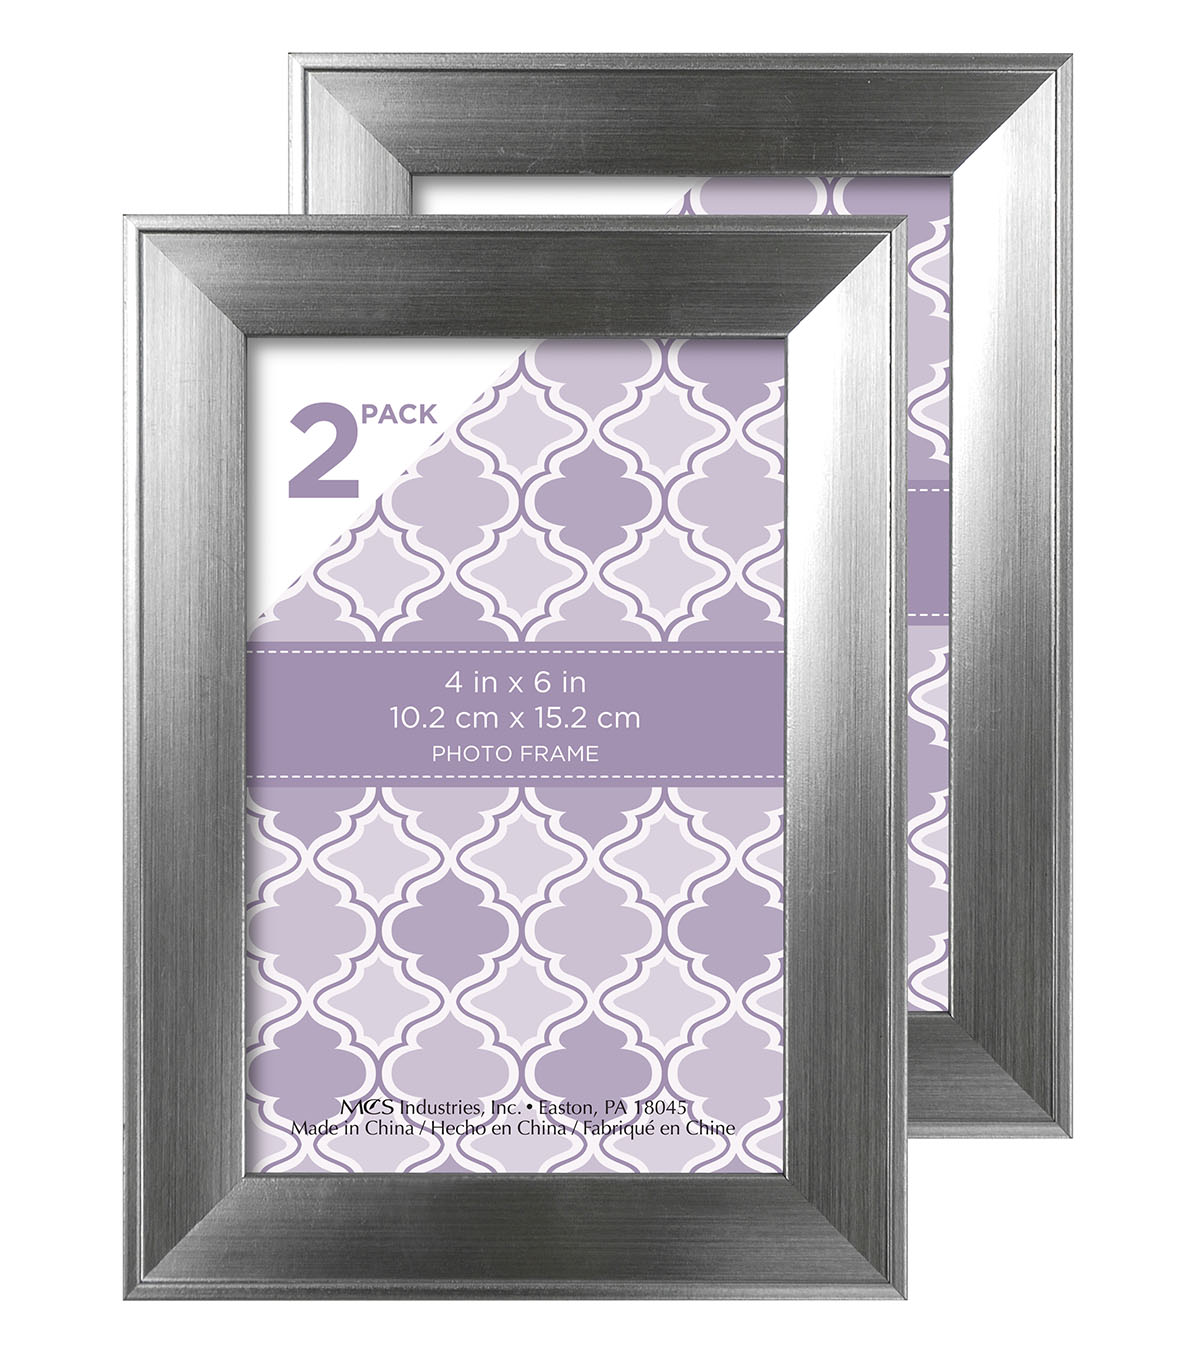 Tabletop Frame 2 Pack 4X6-Brushed Silver